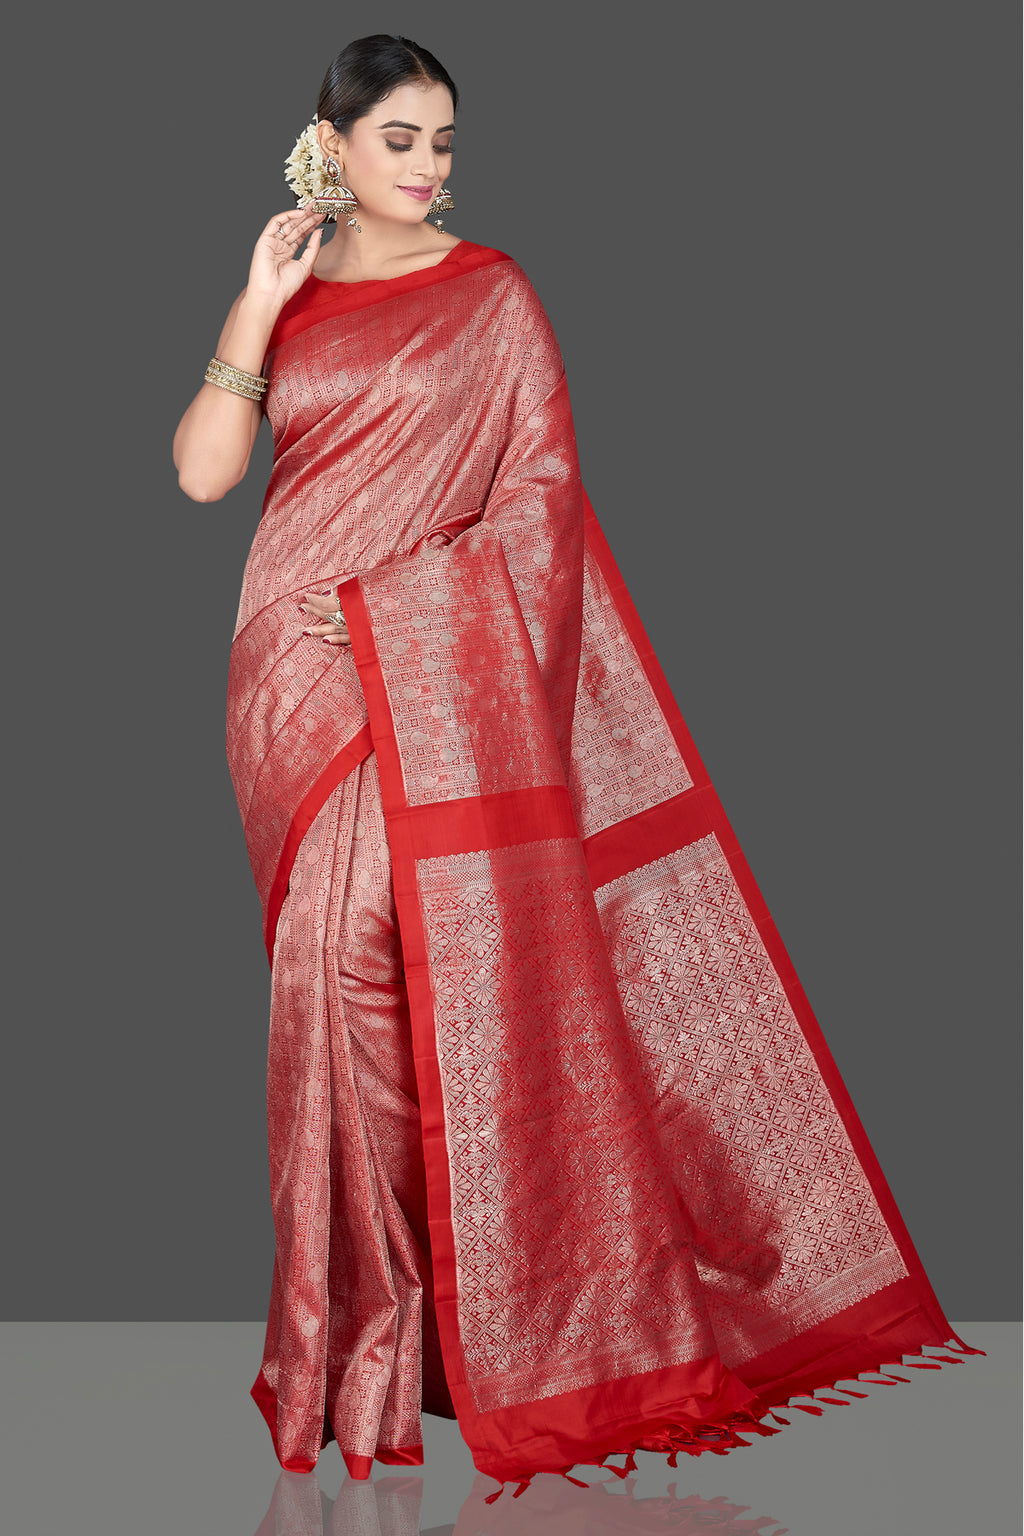 Shop stunning red Kanchipuram saree online in USA with overall zari work. Go for a rich traditional look at weddings and festive occasions in exclusive Kanchipuram silk sarees. south silk sarees, handloom silk sarees, Banarasi saris from Pure Elegance Indian fashion store in USA.-full view